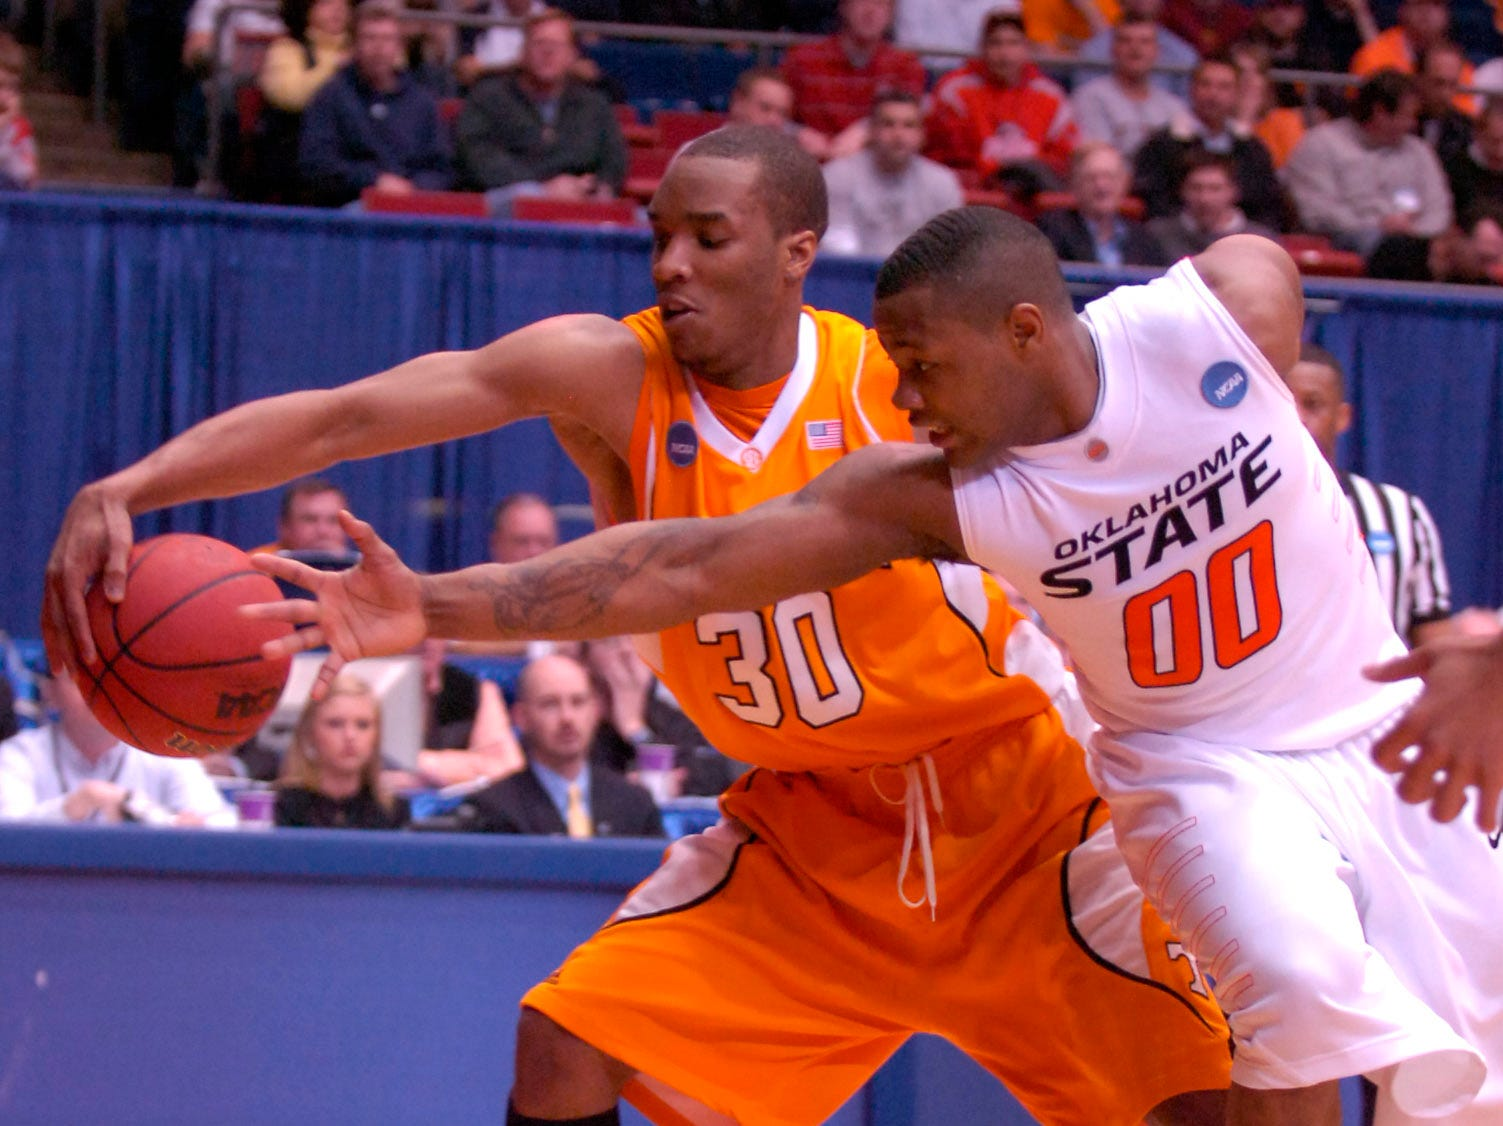 Tennessee's J.P. Prince grabs for a loose ball with Oklahoma State's Byron Eaton during the first round of the 2009 NCAA tournament in Dayton, OH on Friday. UT lost the game 77-75 ending their post season play.